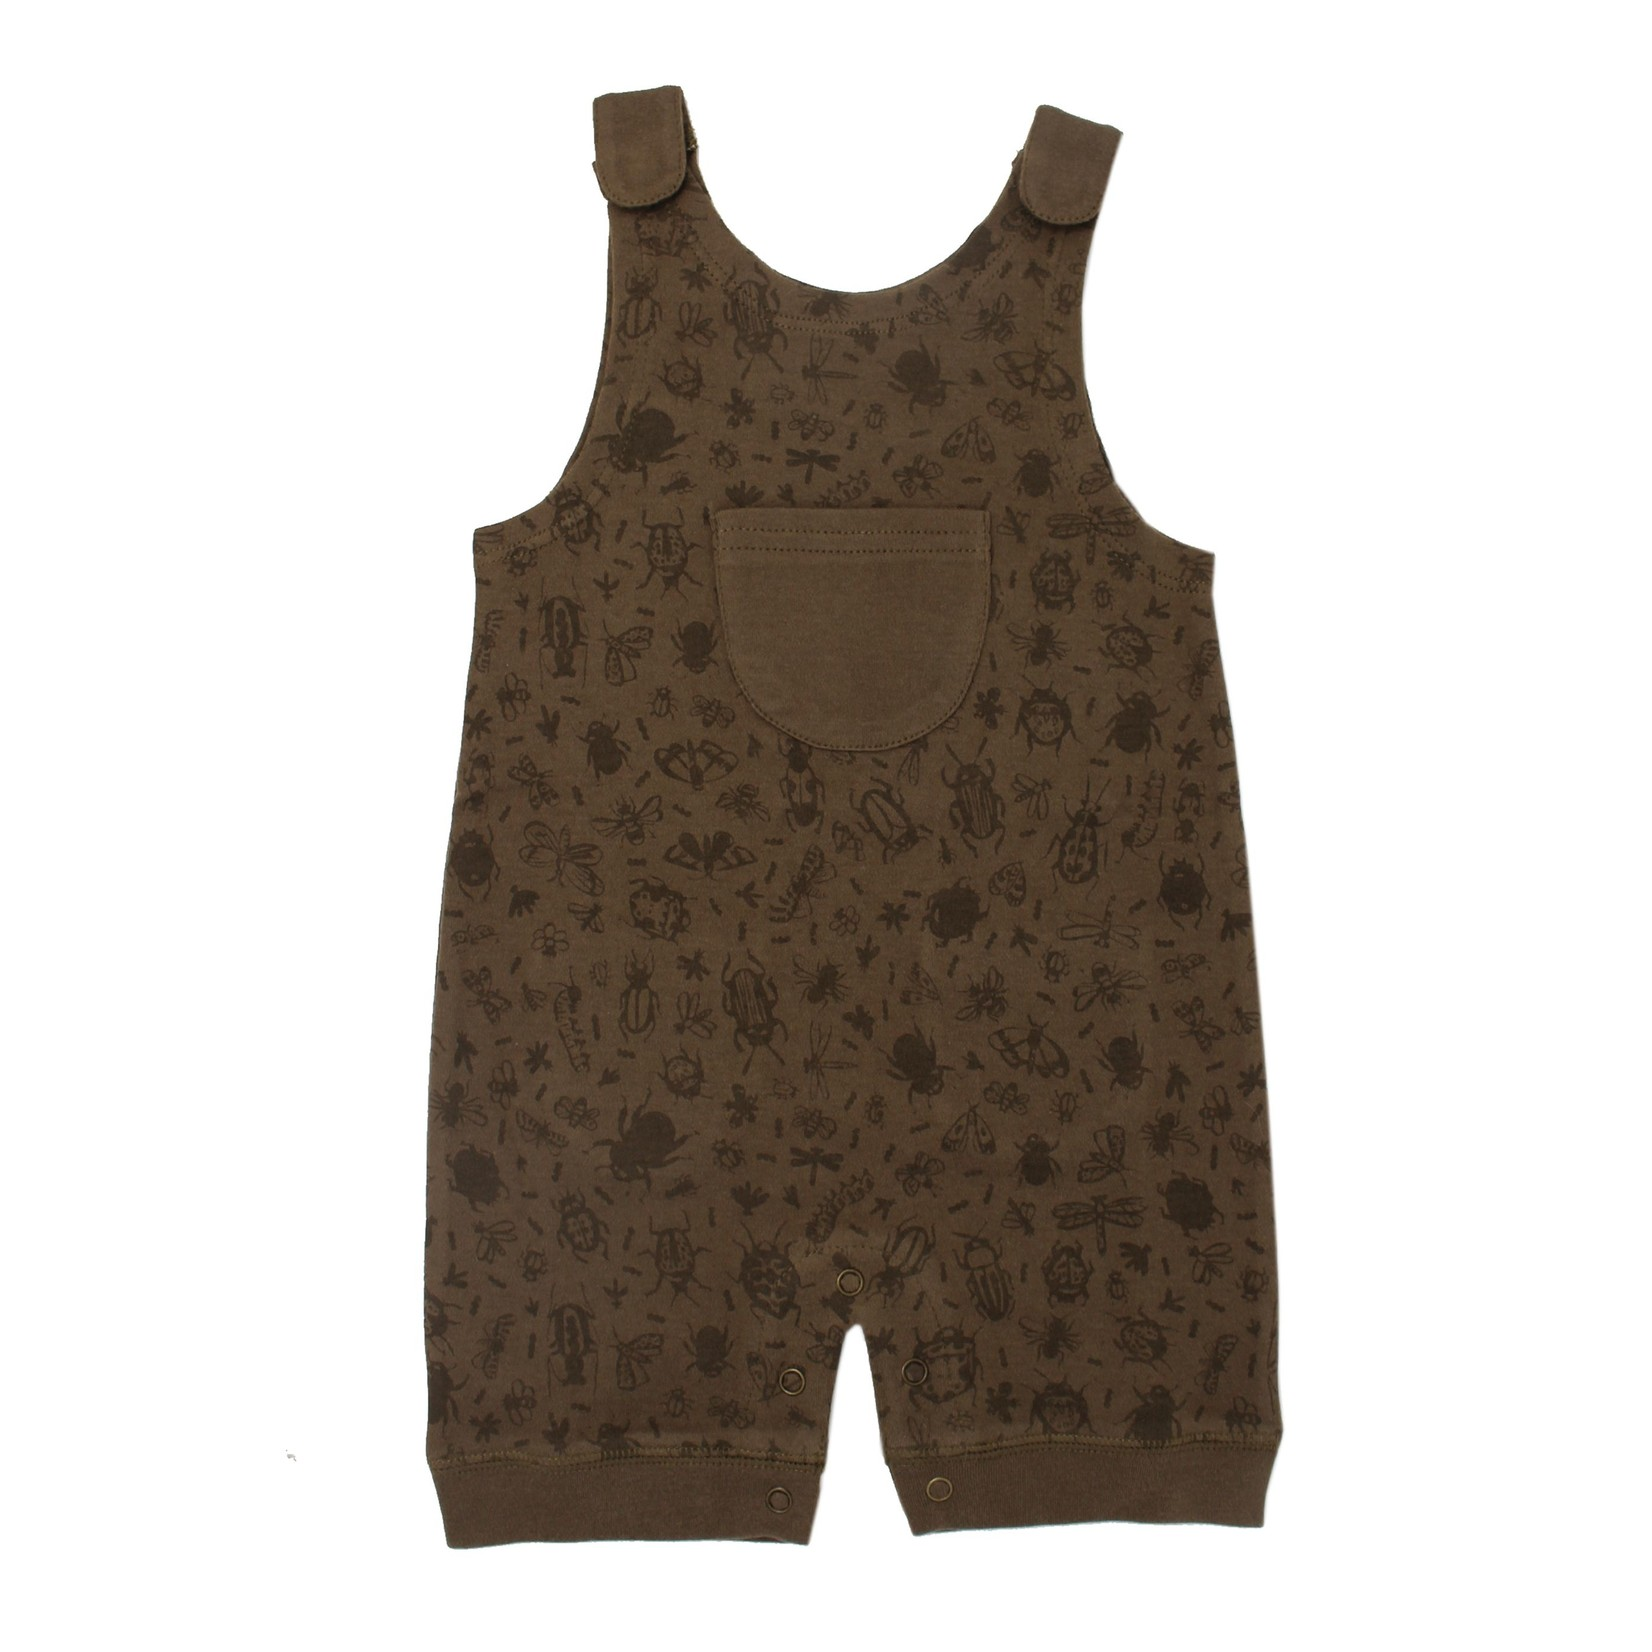 L'oved Baby Don't Bug Me Printed Sleeveless Romper